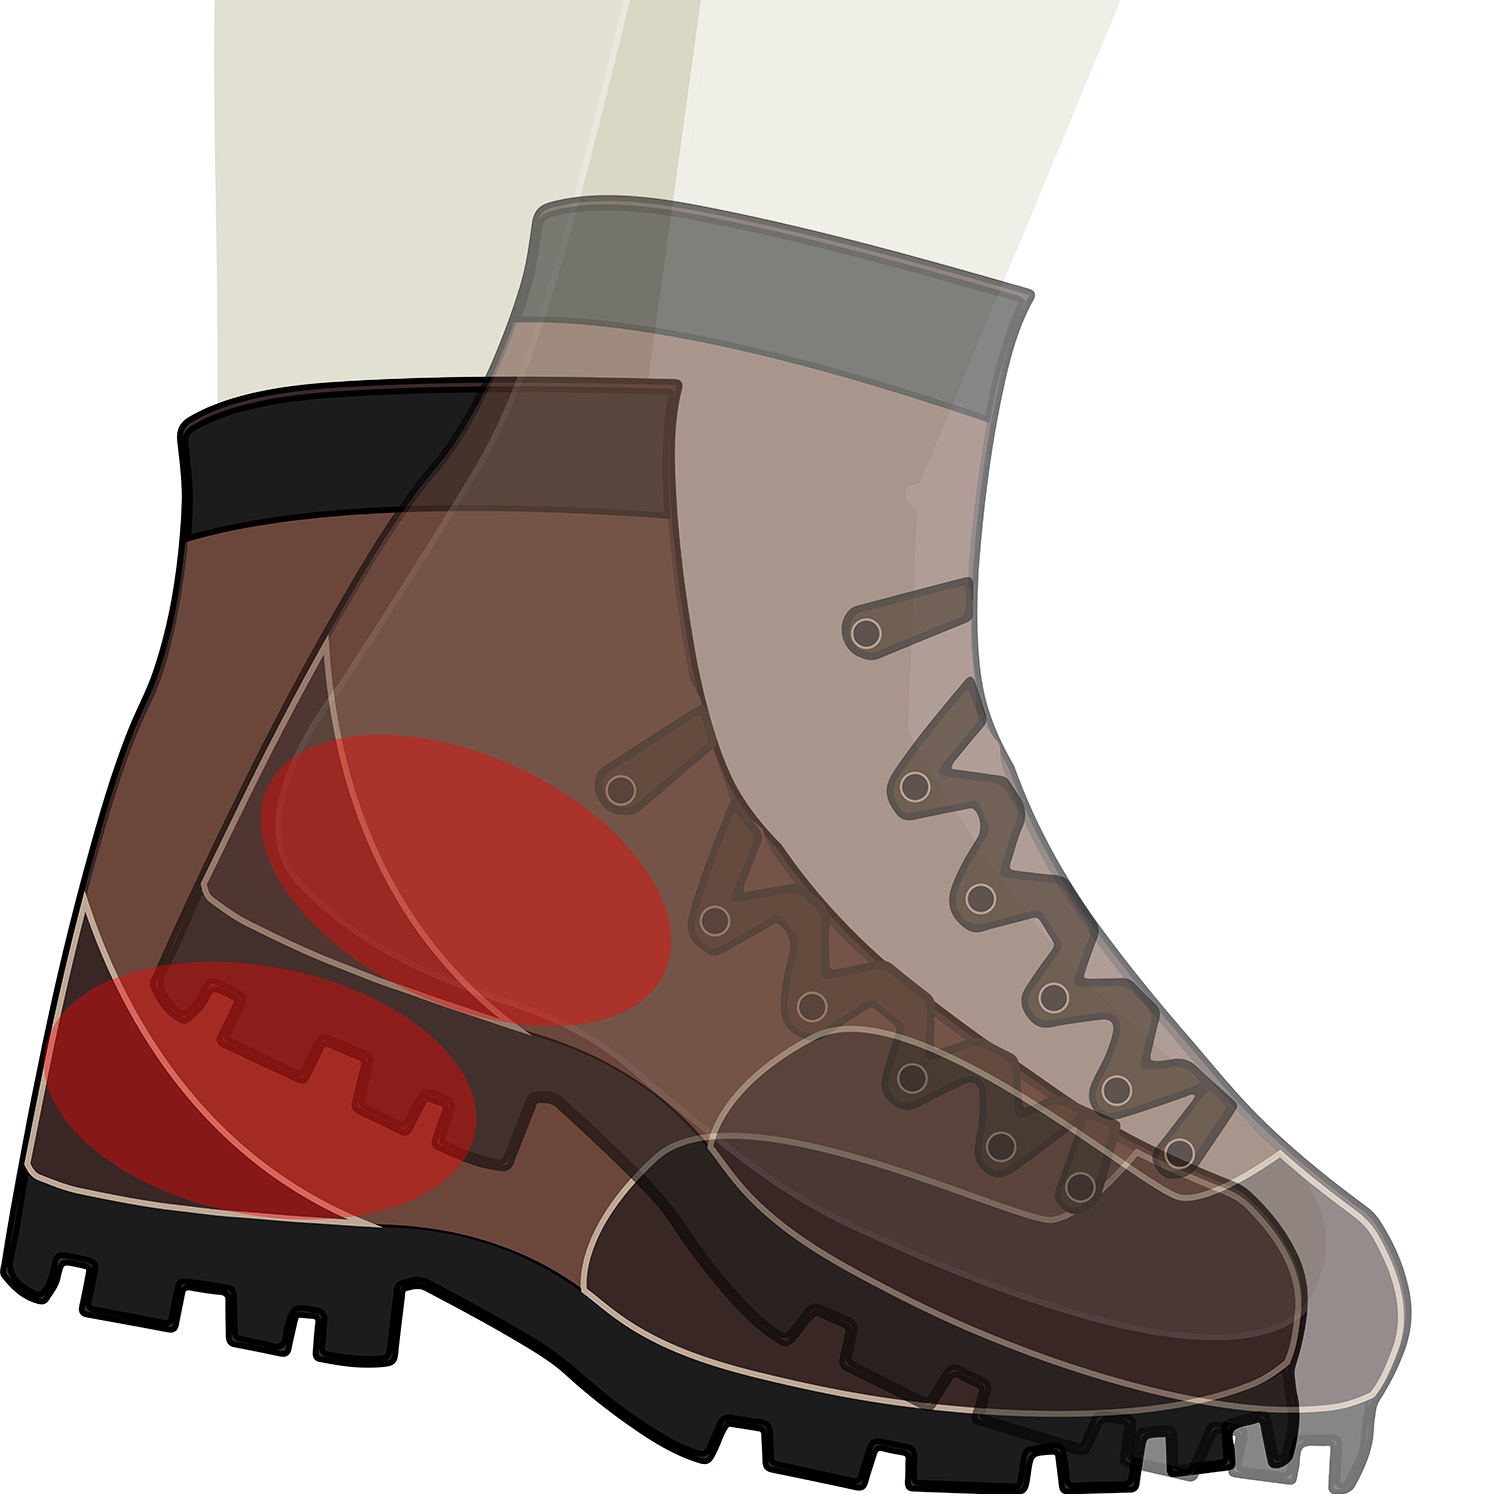 Sock clipart fitting shoe. Footwear bushwalking howtofithikingboots